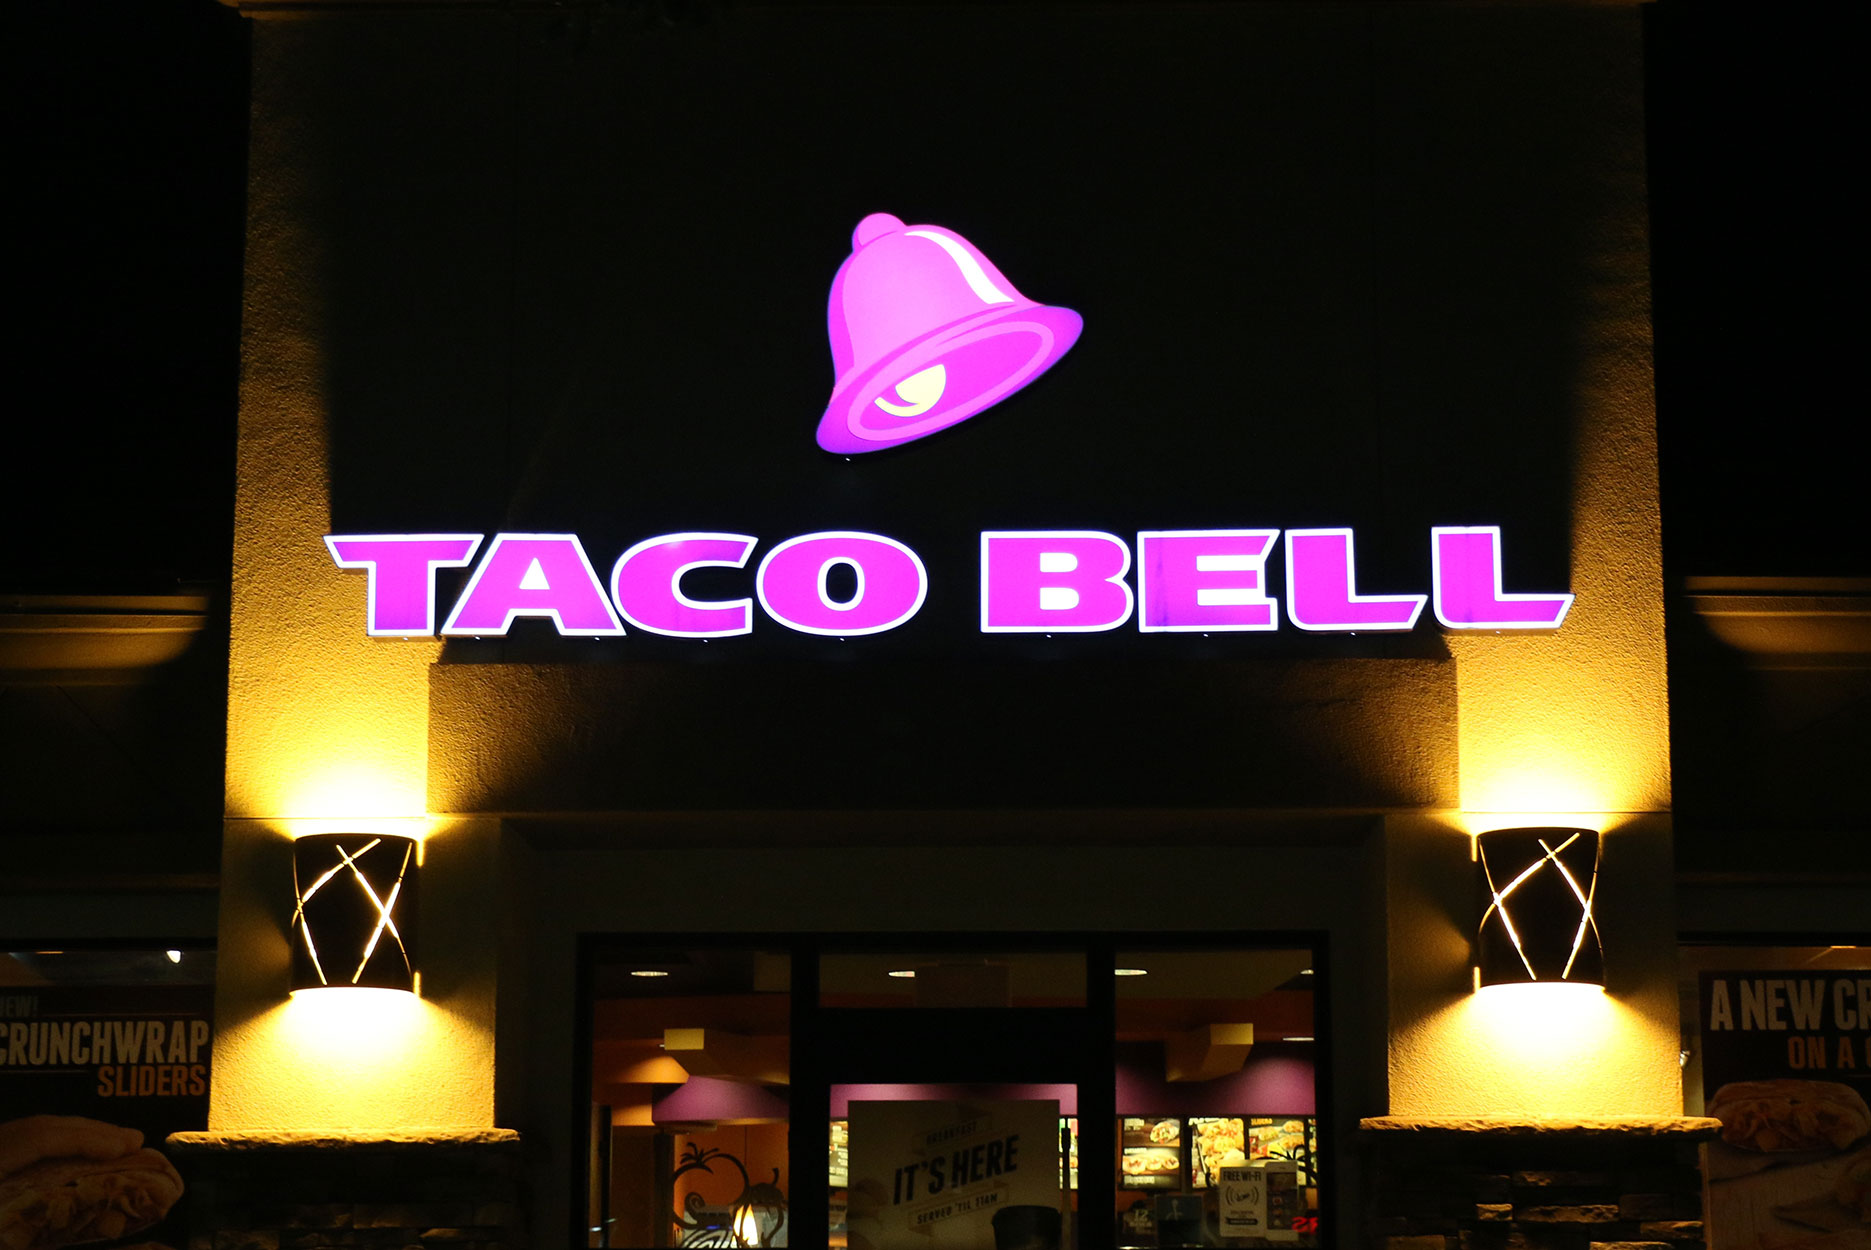 A Taco Bell location at night.